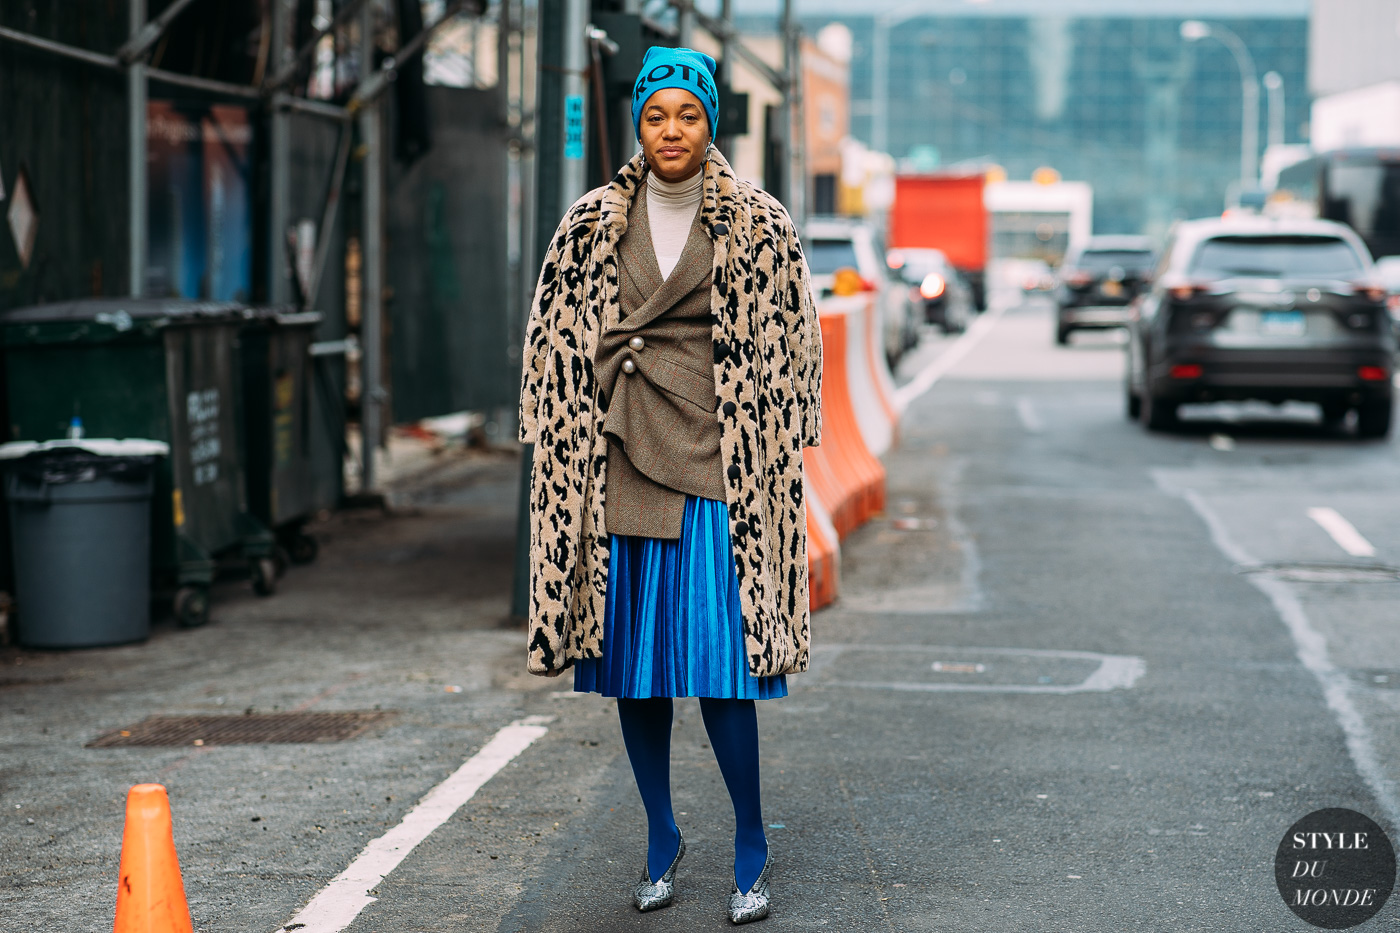 Tamu McPherson by STYLEDUMONDE Street Style Fashion Photography NY FW18 20180210_48A4307